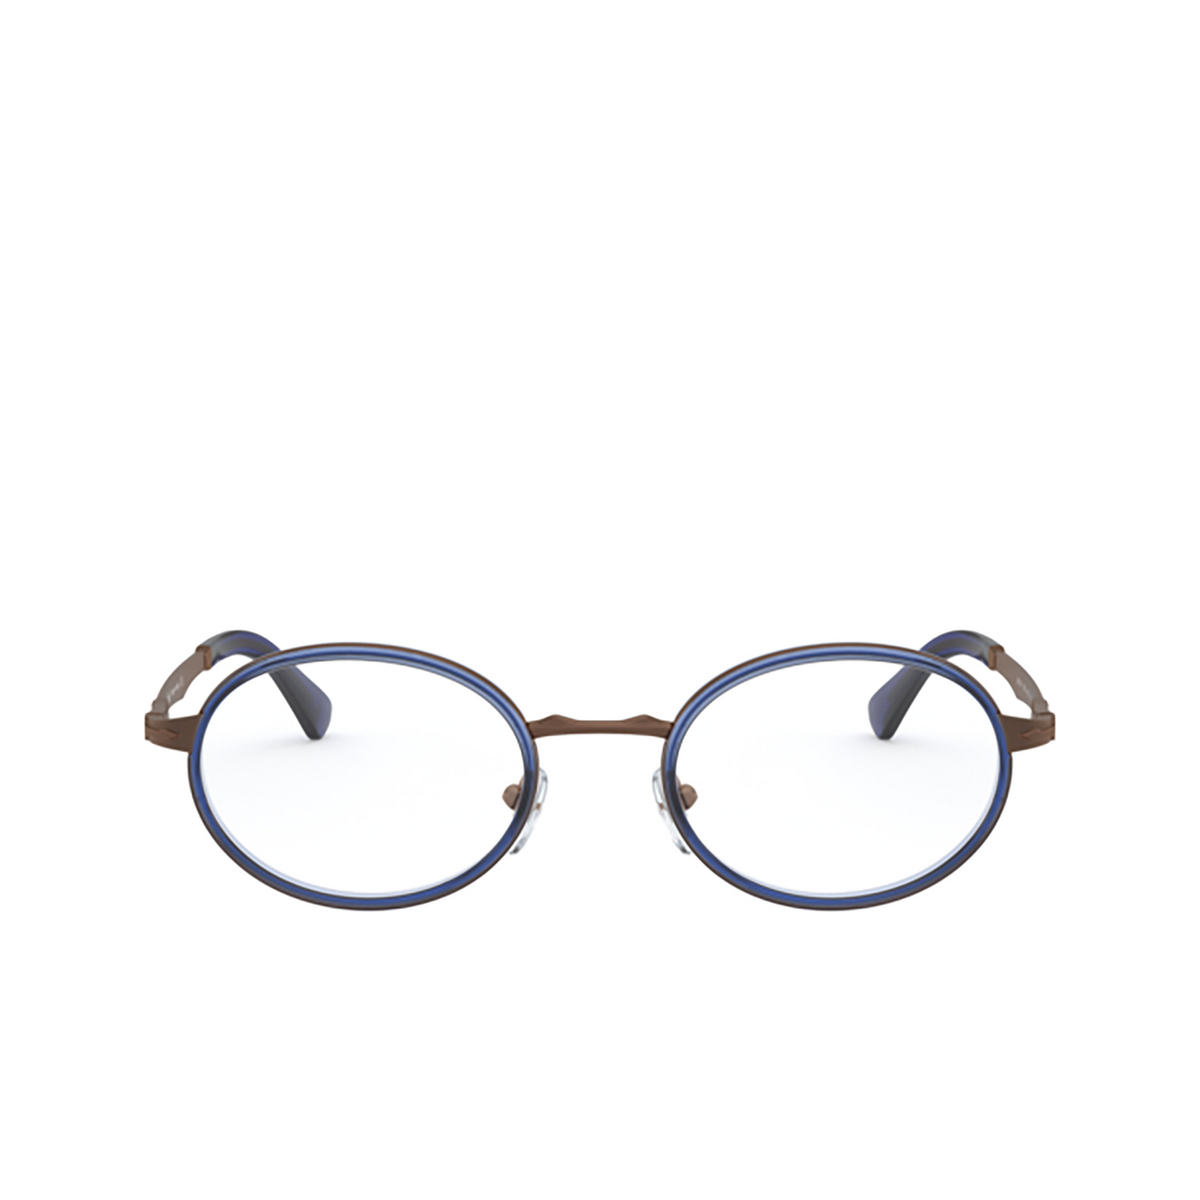 Persol® Oval Eyeglasses: PO2452V color Brown & Blue 1095 - front view.